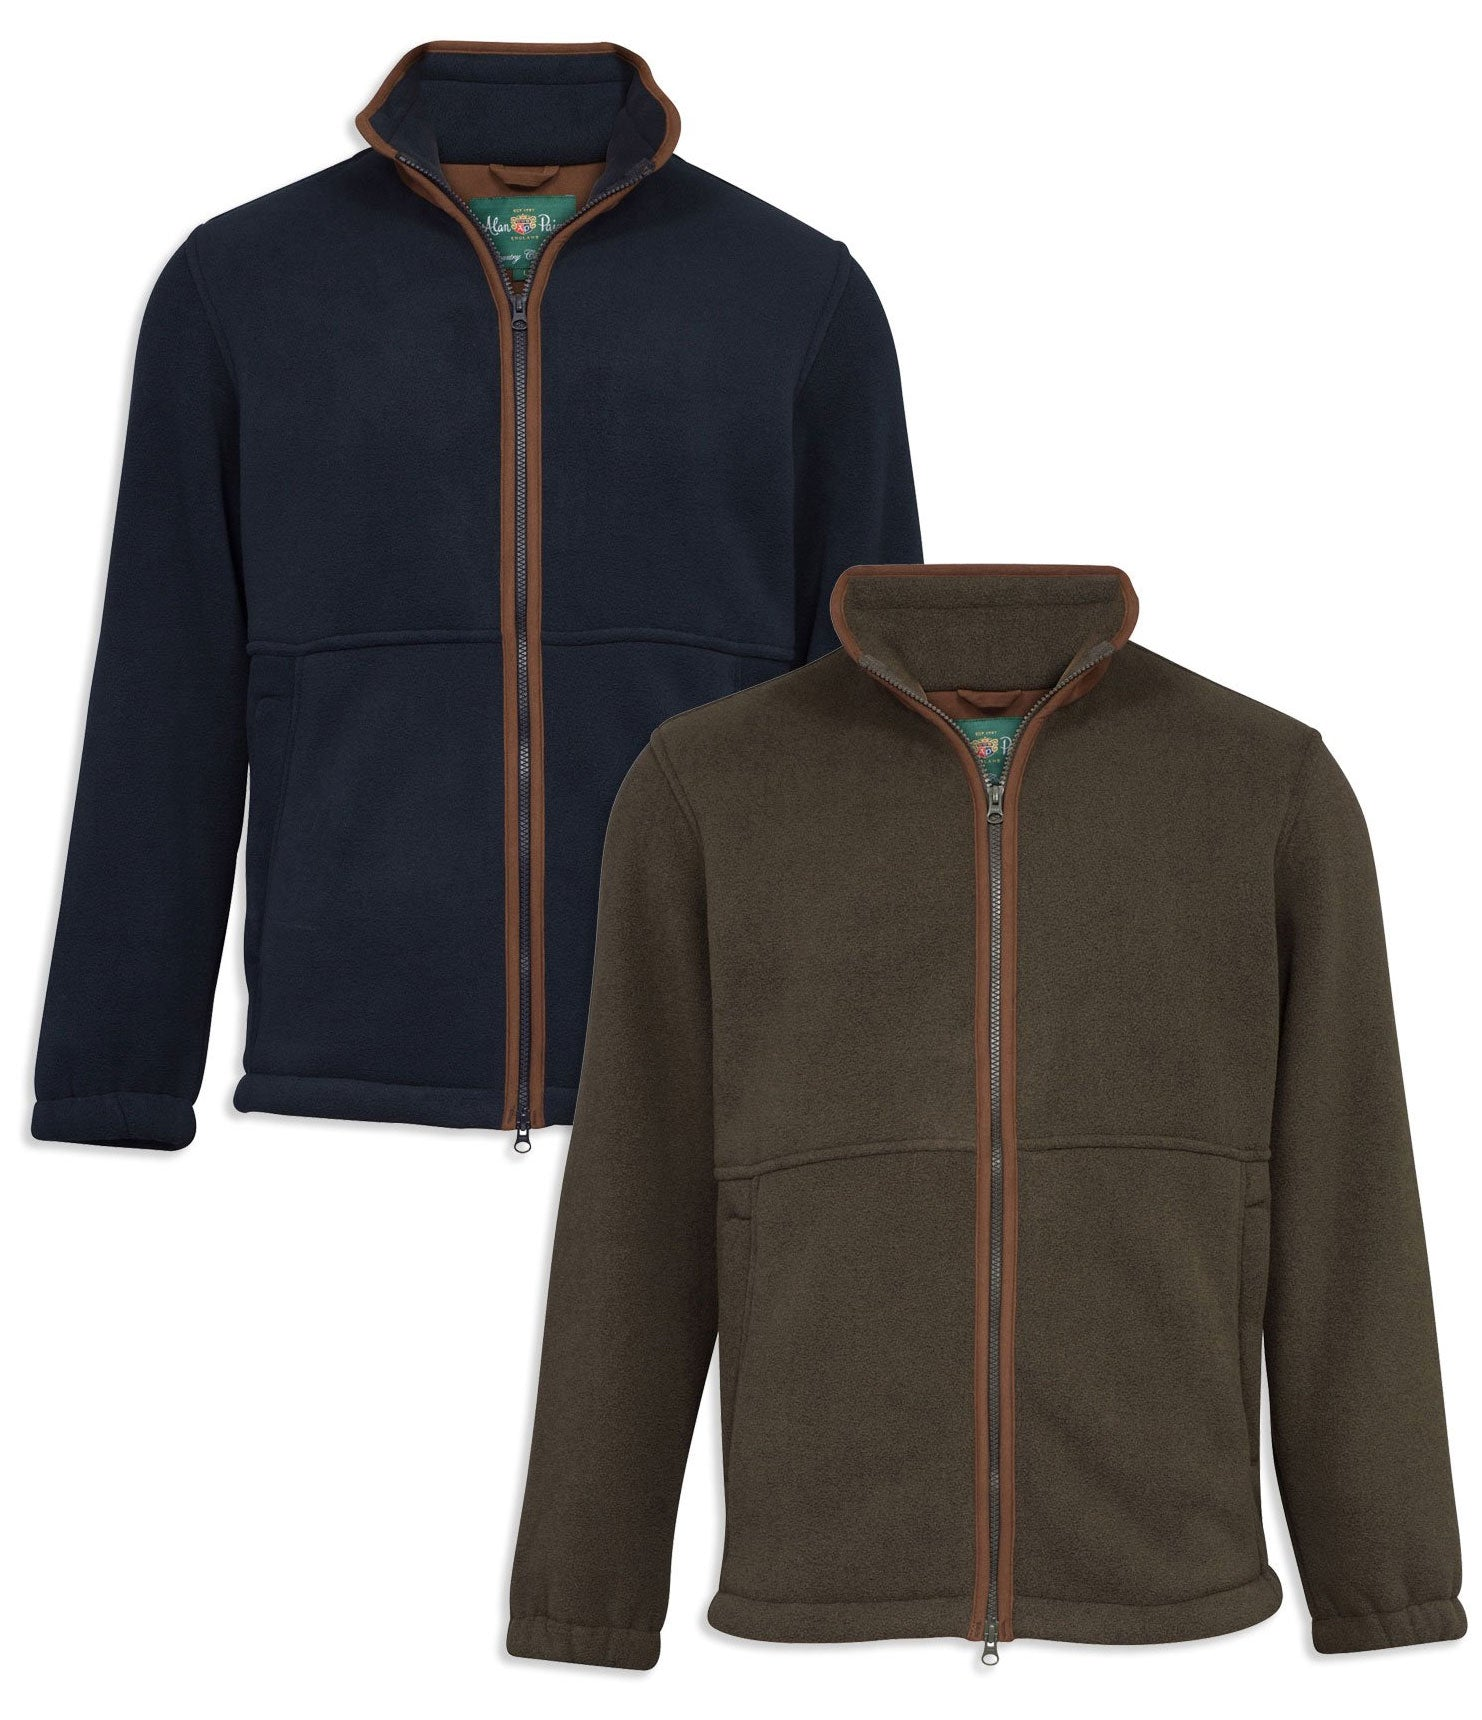 Alan Paine Aylsham Fleece Jacket in green and navy